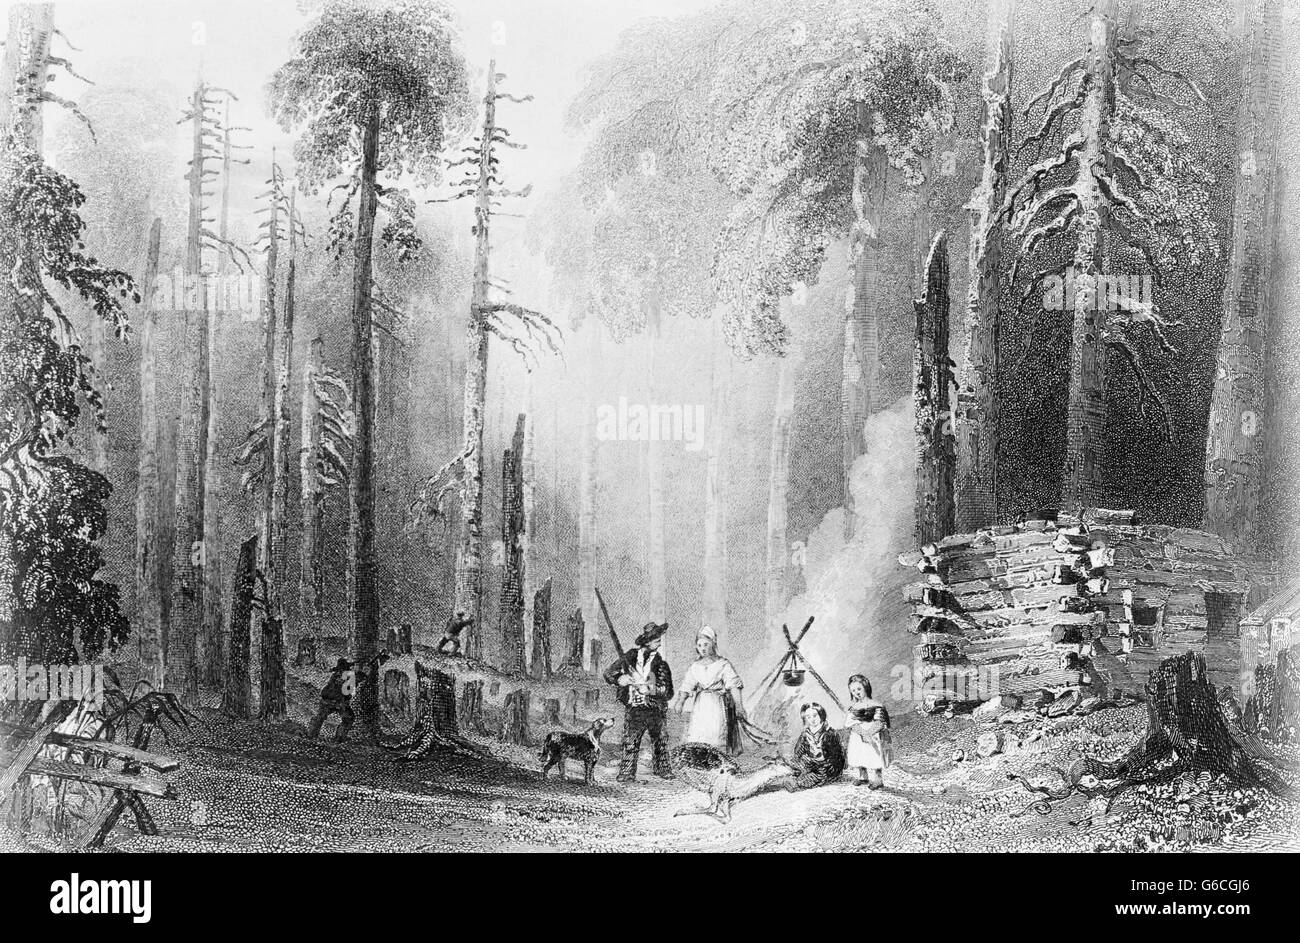 1840s 1850s ENGRAVING W.H. BARLETT'S PAINTING FIRST SETTLEMENT OF FRONTIER PIONEERS LOG CABIN FAMILY ANIMALS - Stock Image